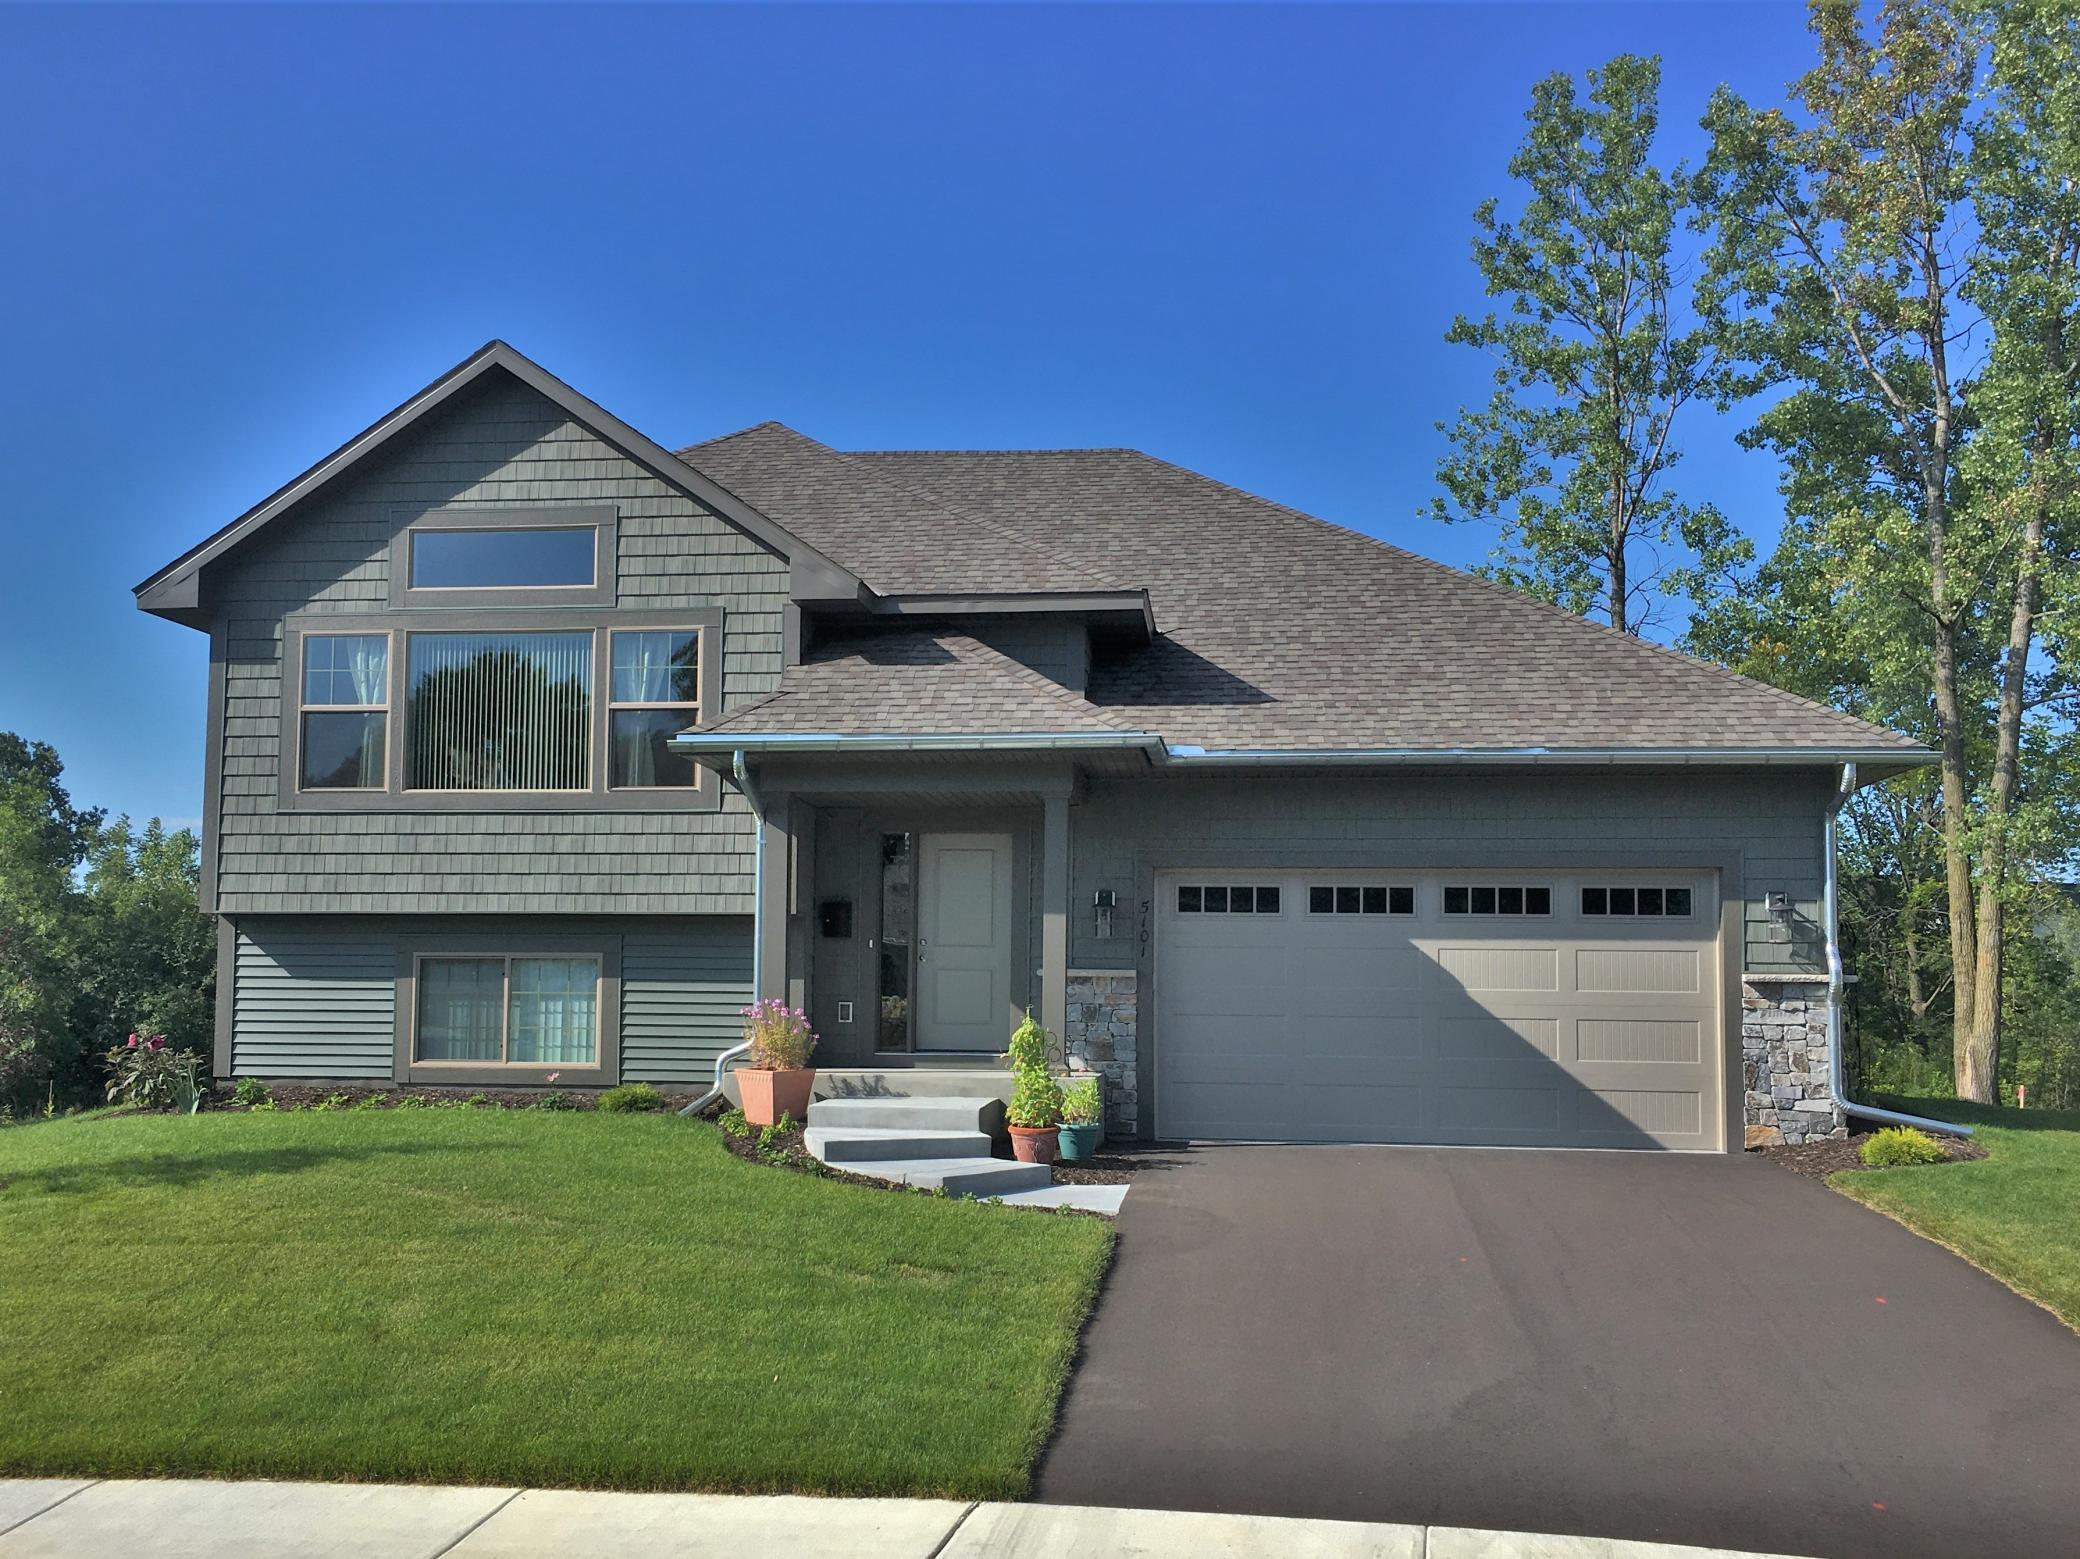 7225 51st Avenue N Property Photo - New Hope, MN real estate listing